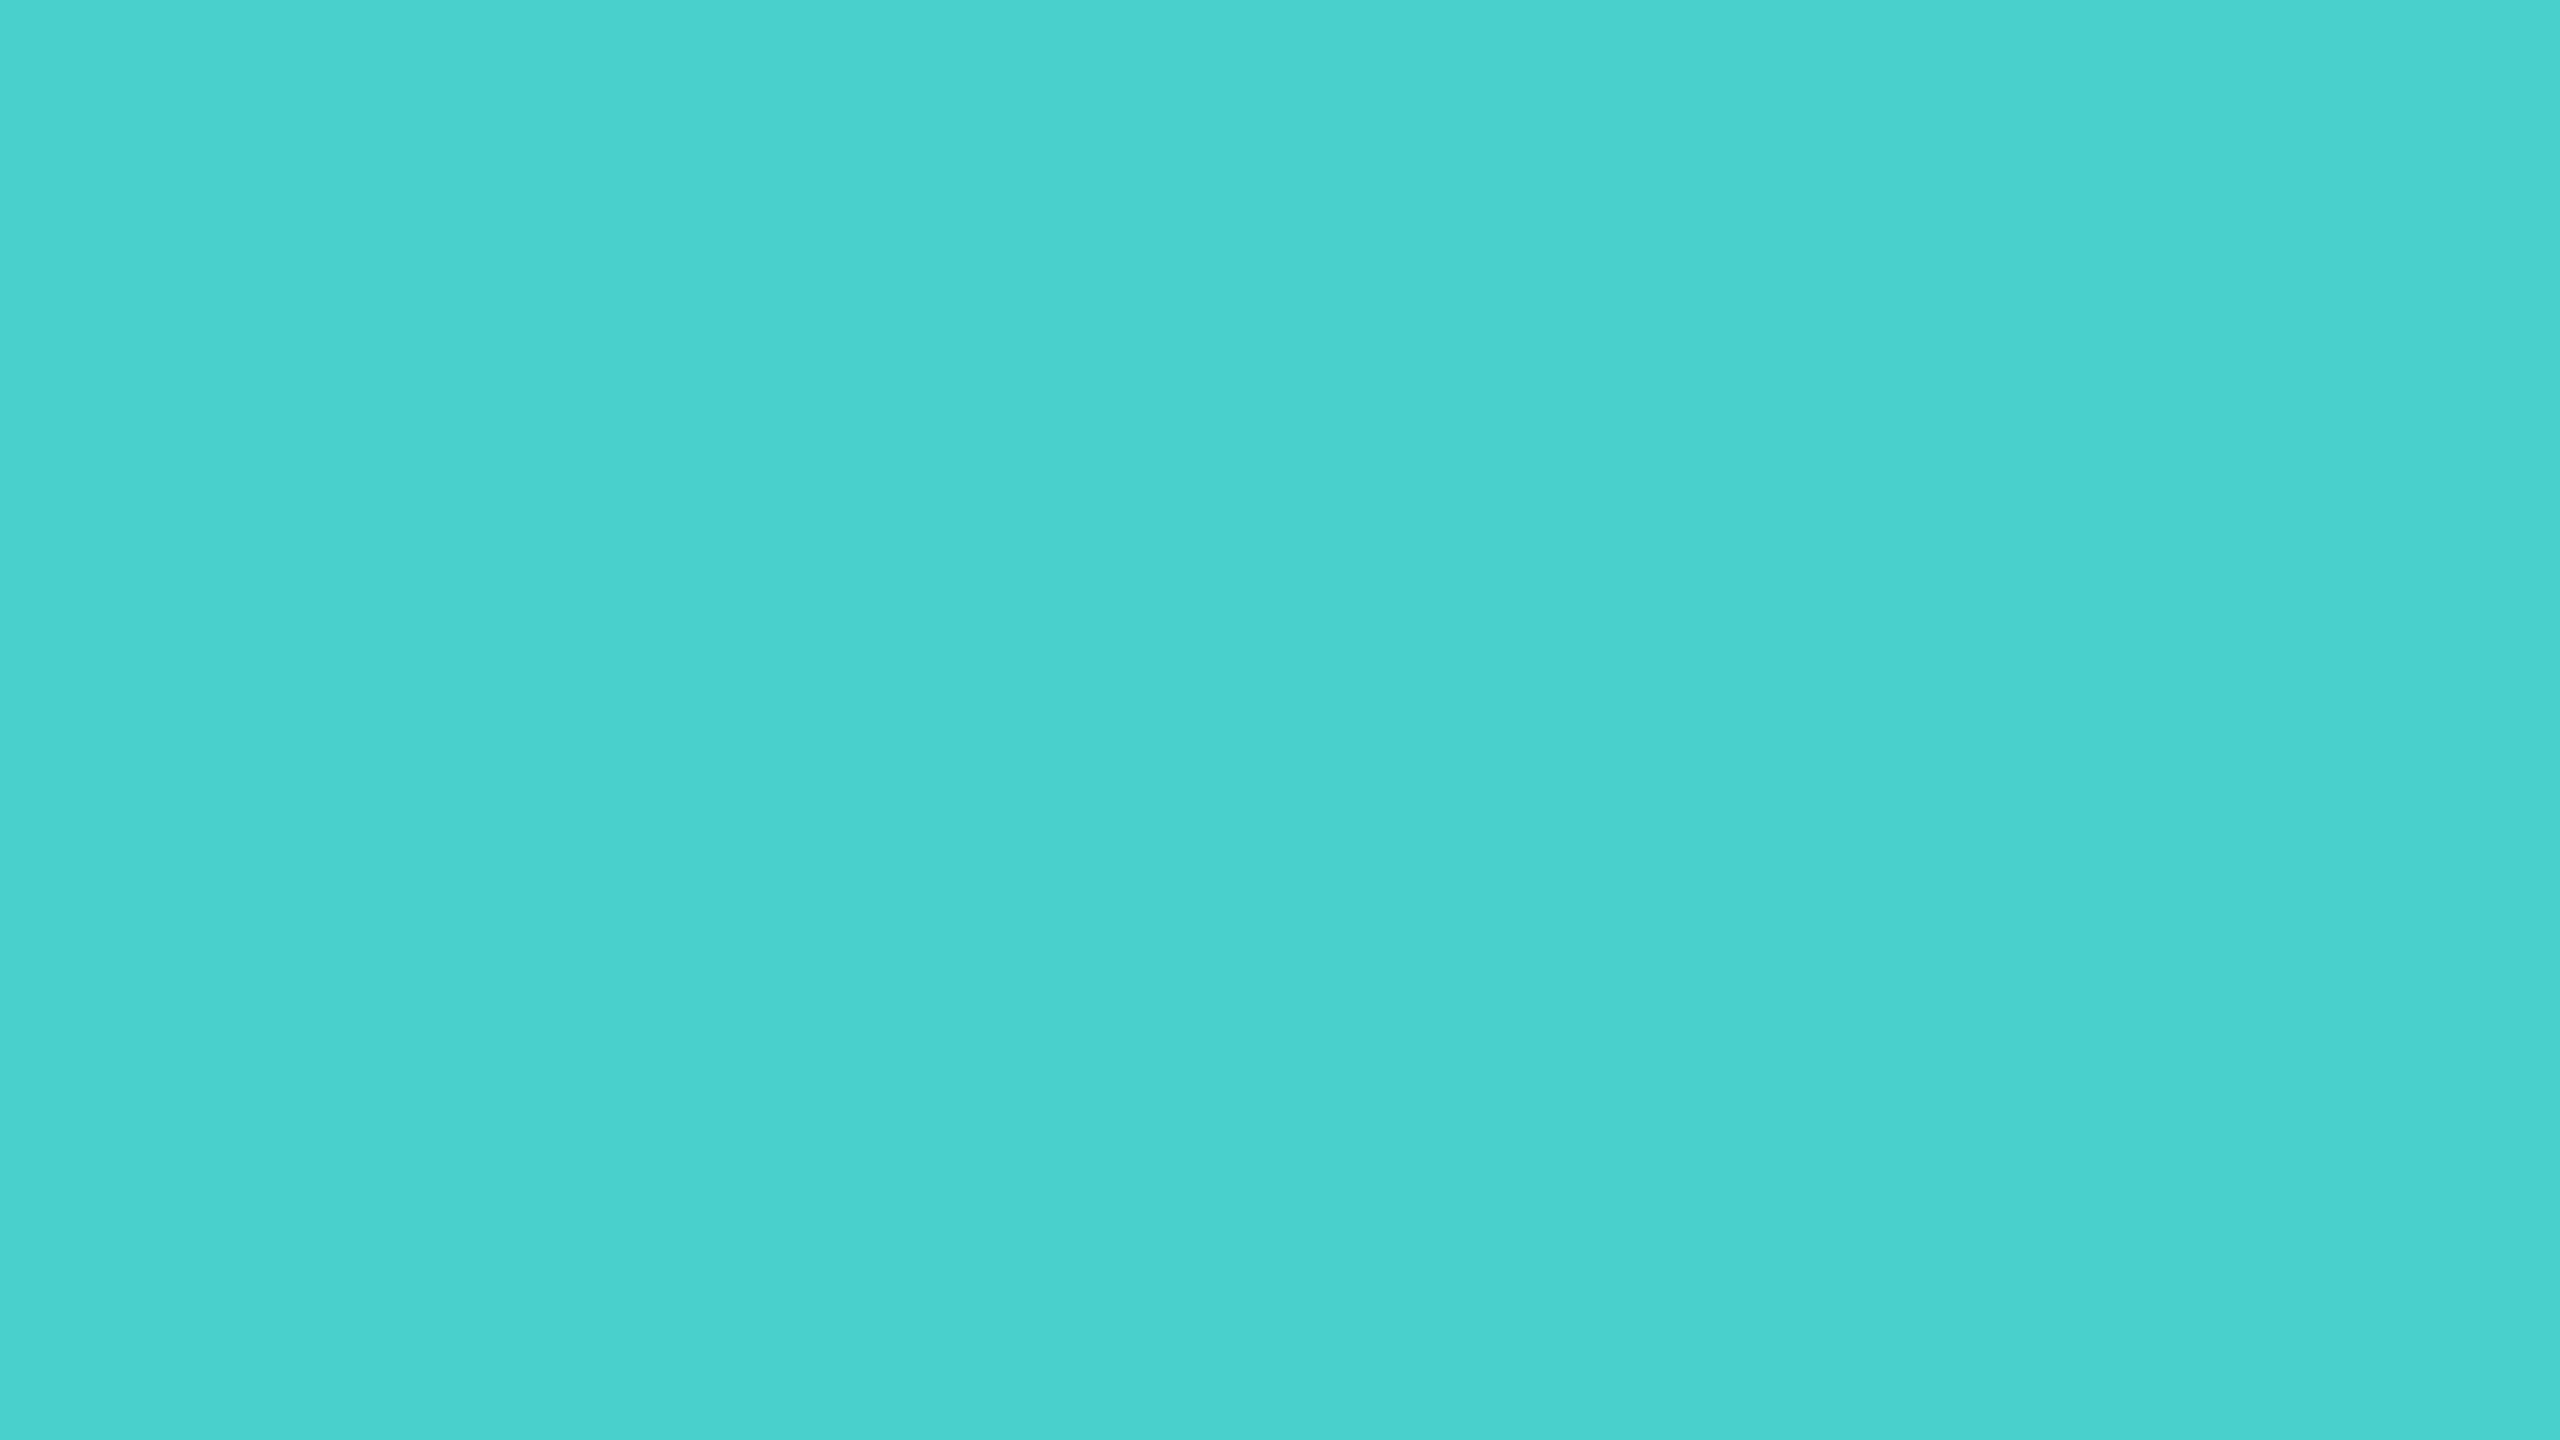 2560x1440 Medium Turquoise Solid Color Background